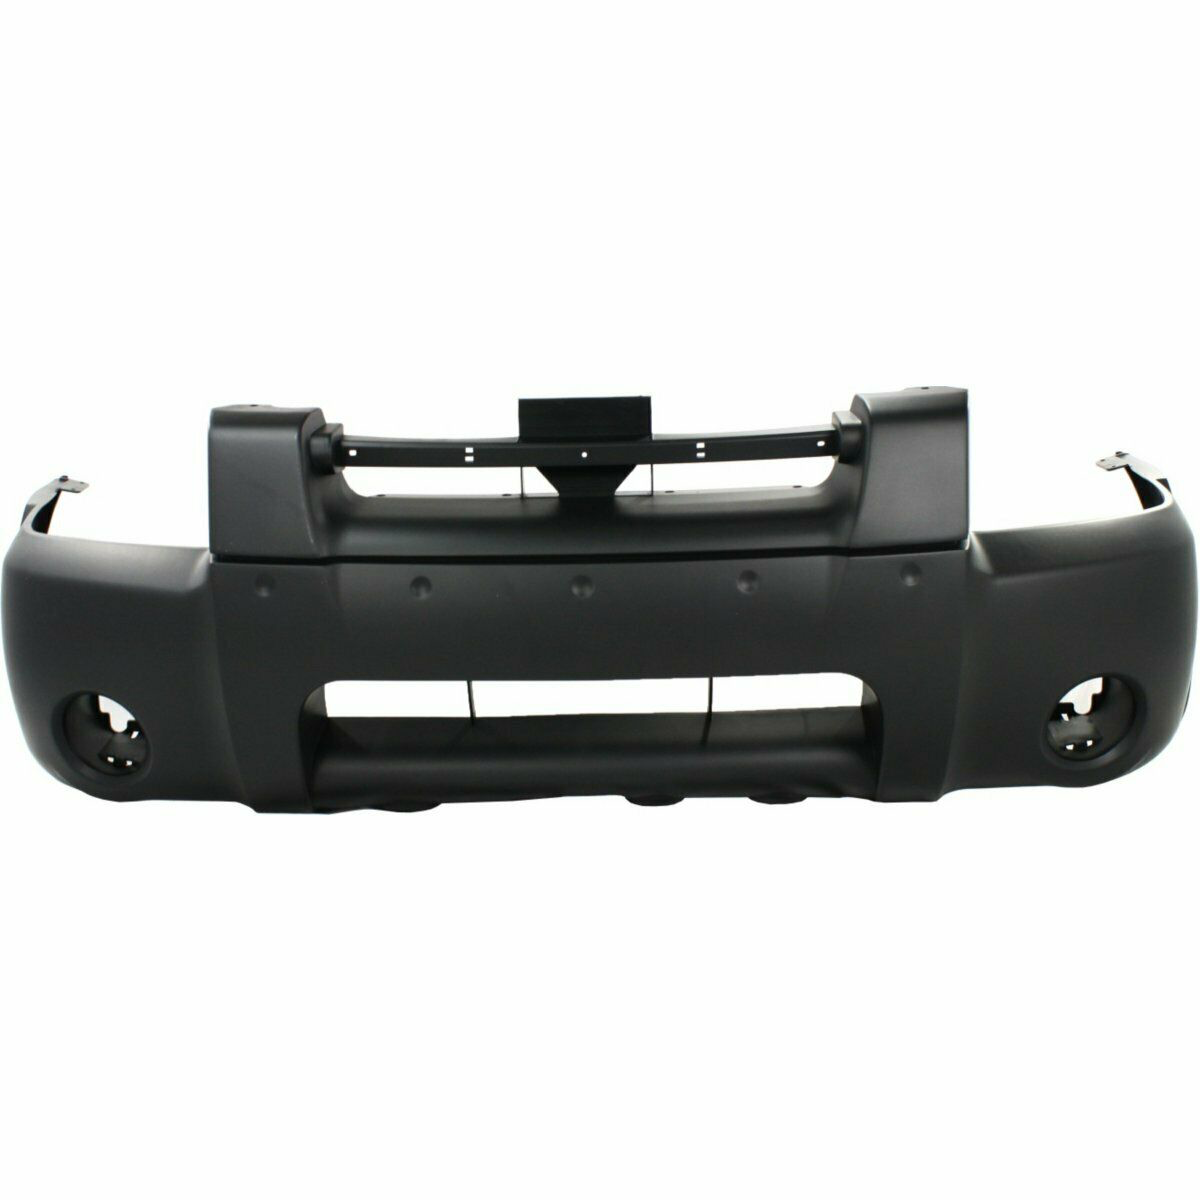 2001-2002 Nissan Frontier Front Bumper Painted to Match